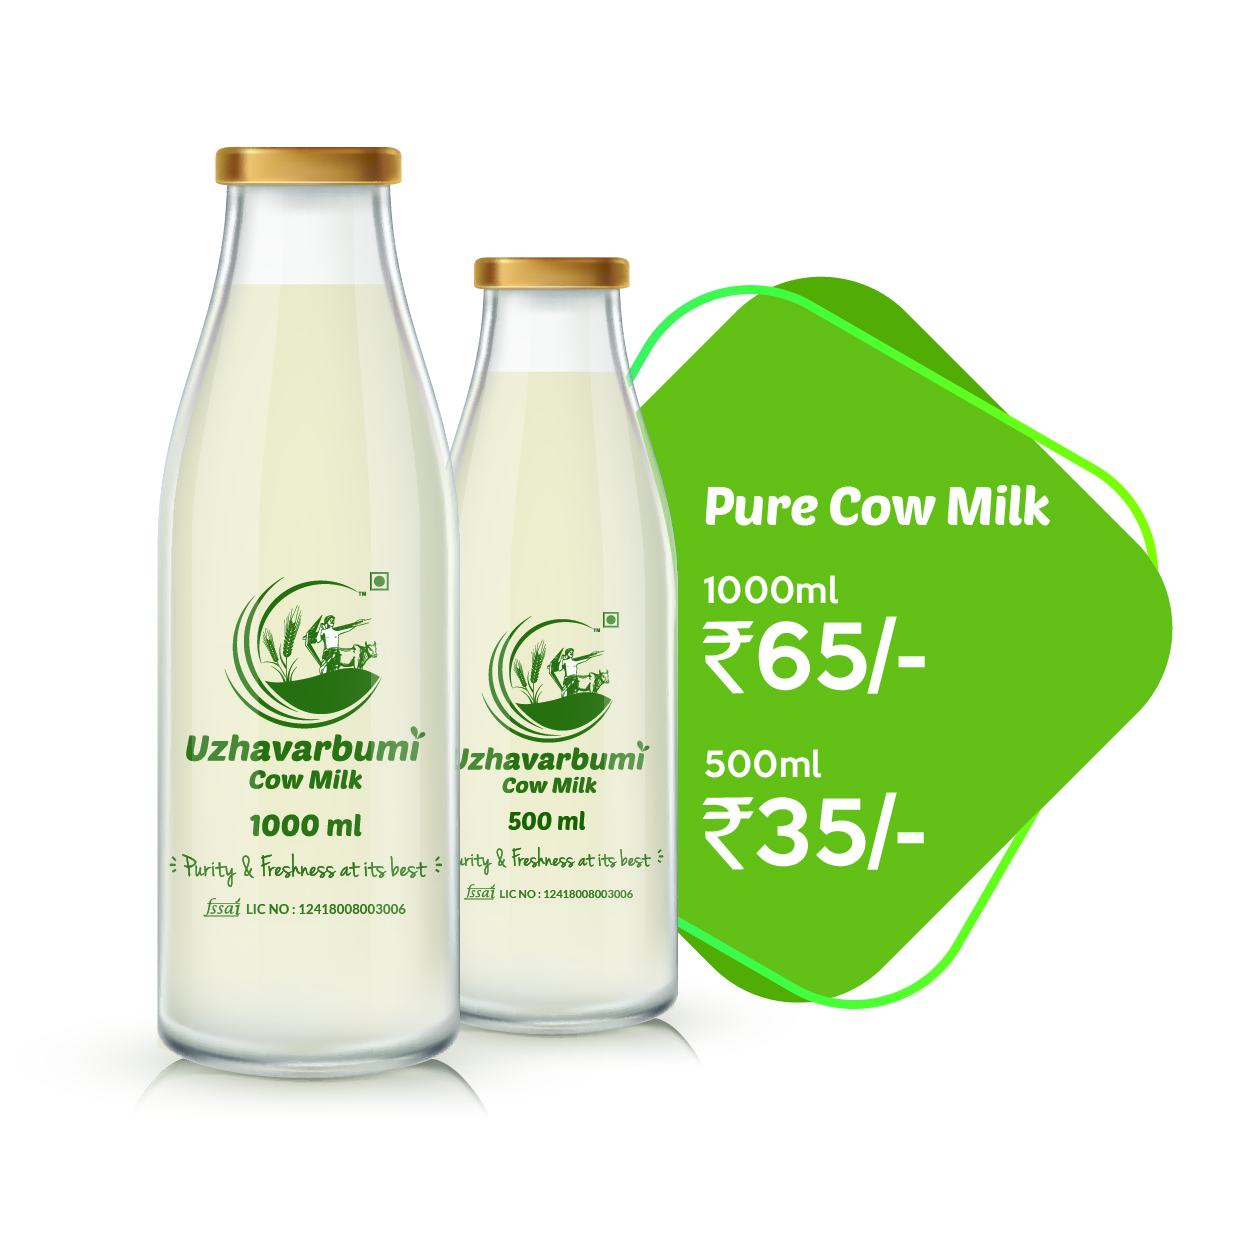 UzhavarBumi's Pure Cow Milk